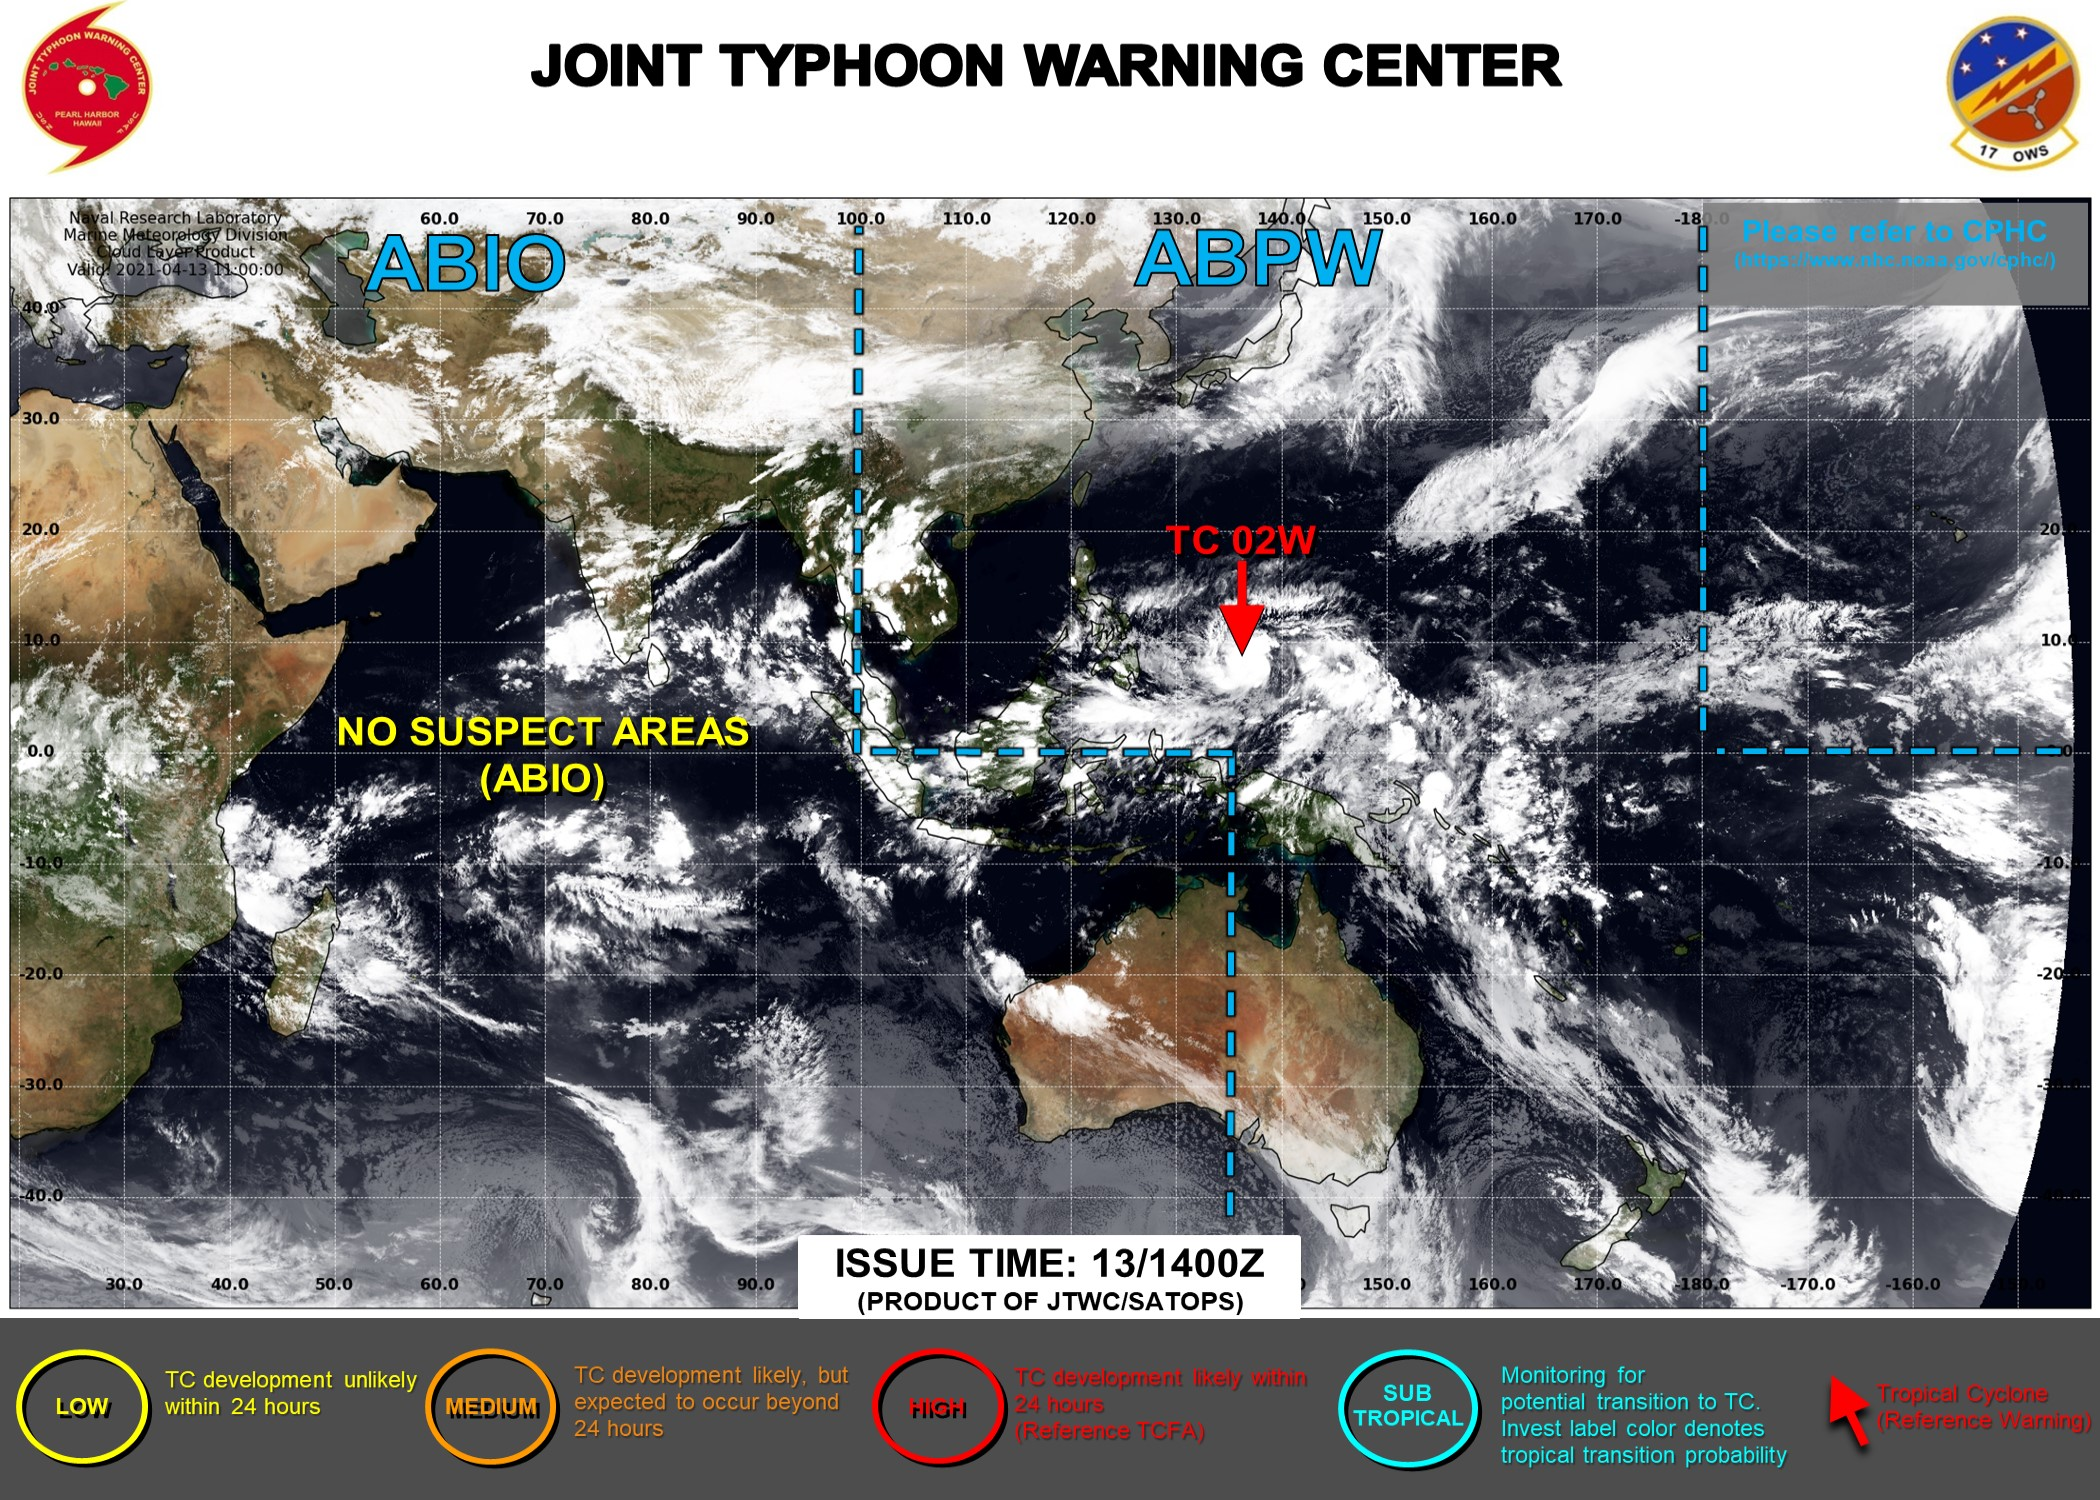 13/15UTC. INVEST 94W HAS REACHED 25KNOTS AND IS NOW TD 02W . JTWC IS ISSUING 6HOURLY WARNINGS ALONG WITH 3HOURLY SATELLITE BULLETINS ON TD 02W.